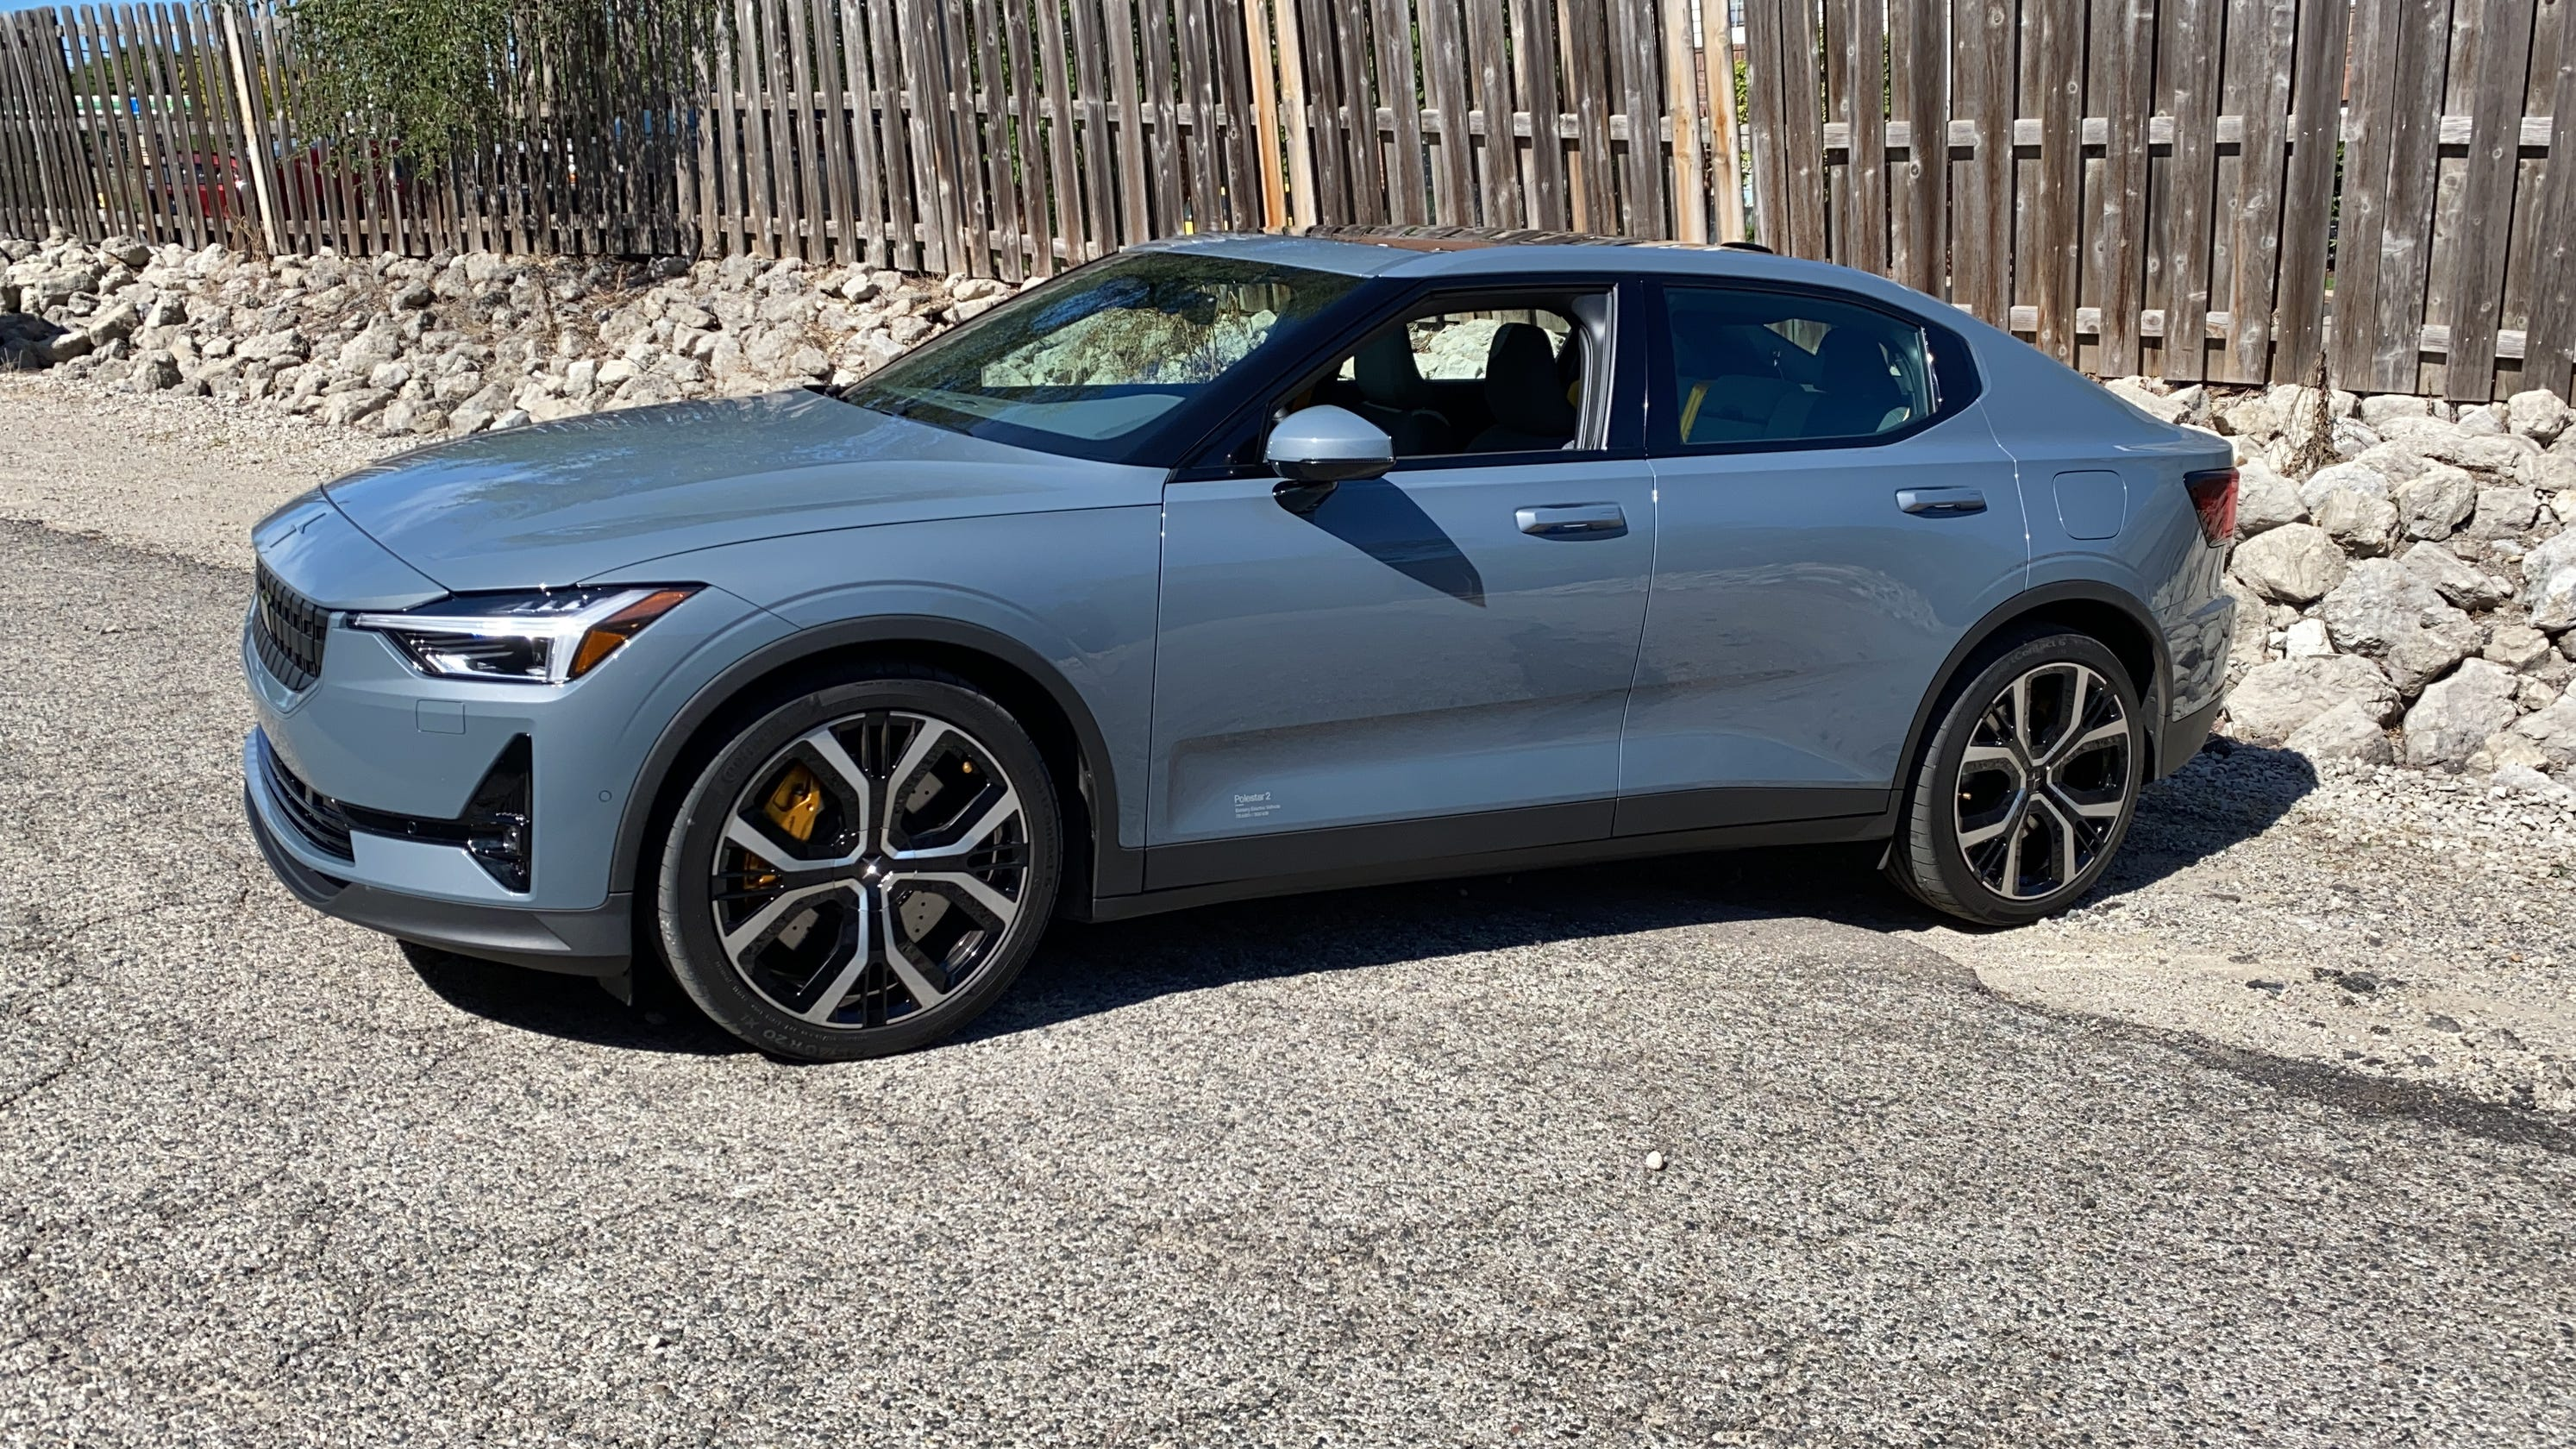 This Volvo electric car is fast, fun, advanced